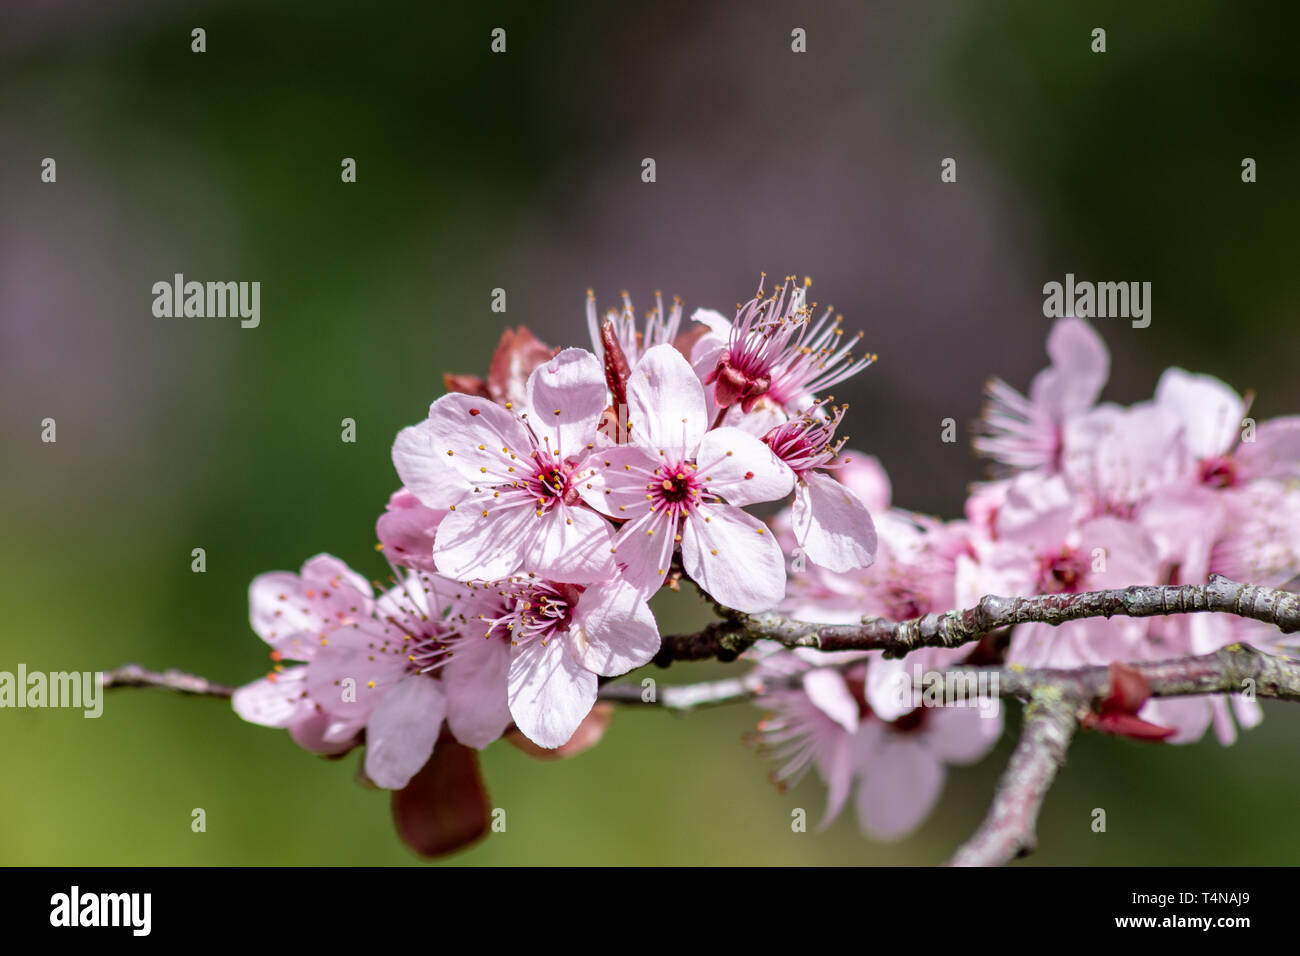 Close up of Prunus Cerasifera Pissardii cherry-plum tree blossom with pink flowers on blurred garden background in spring sunshine Stock Photo